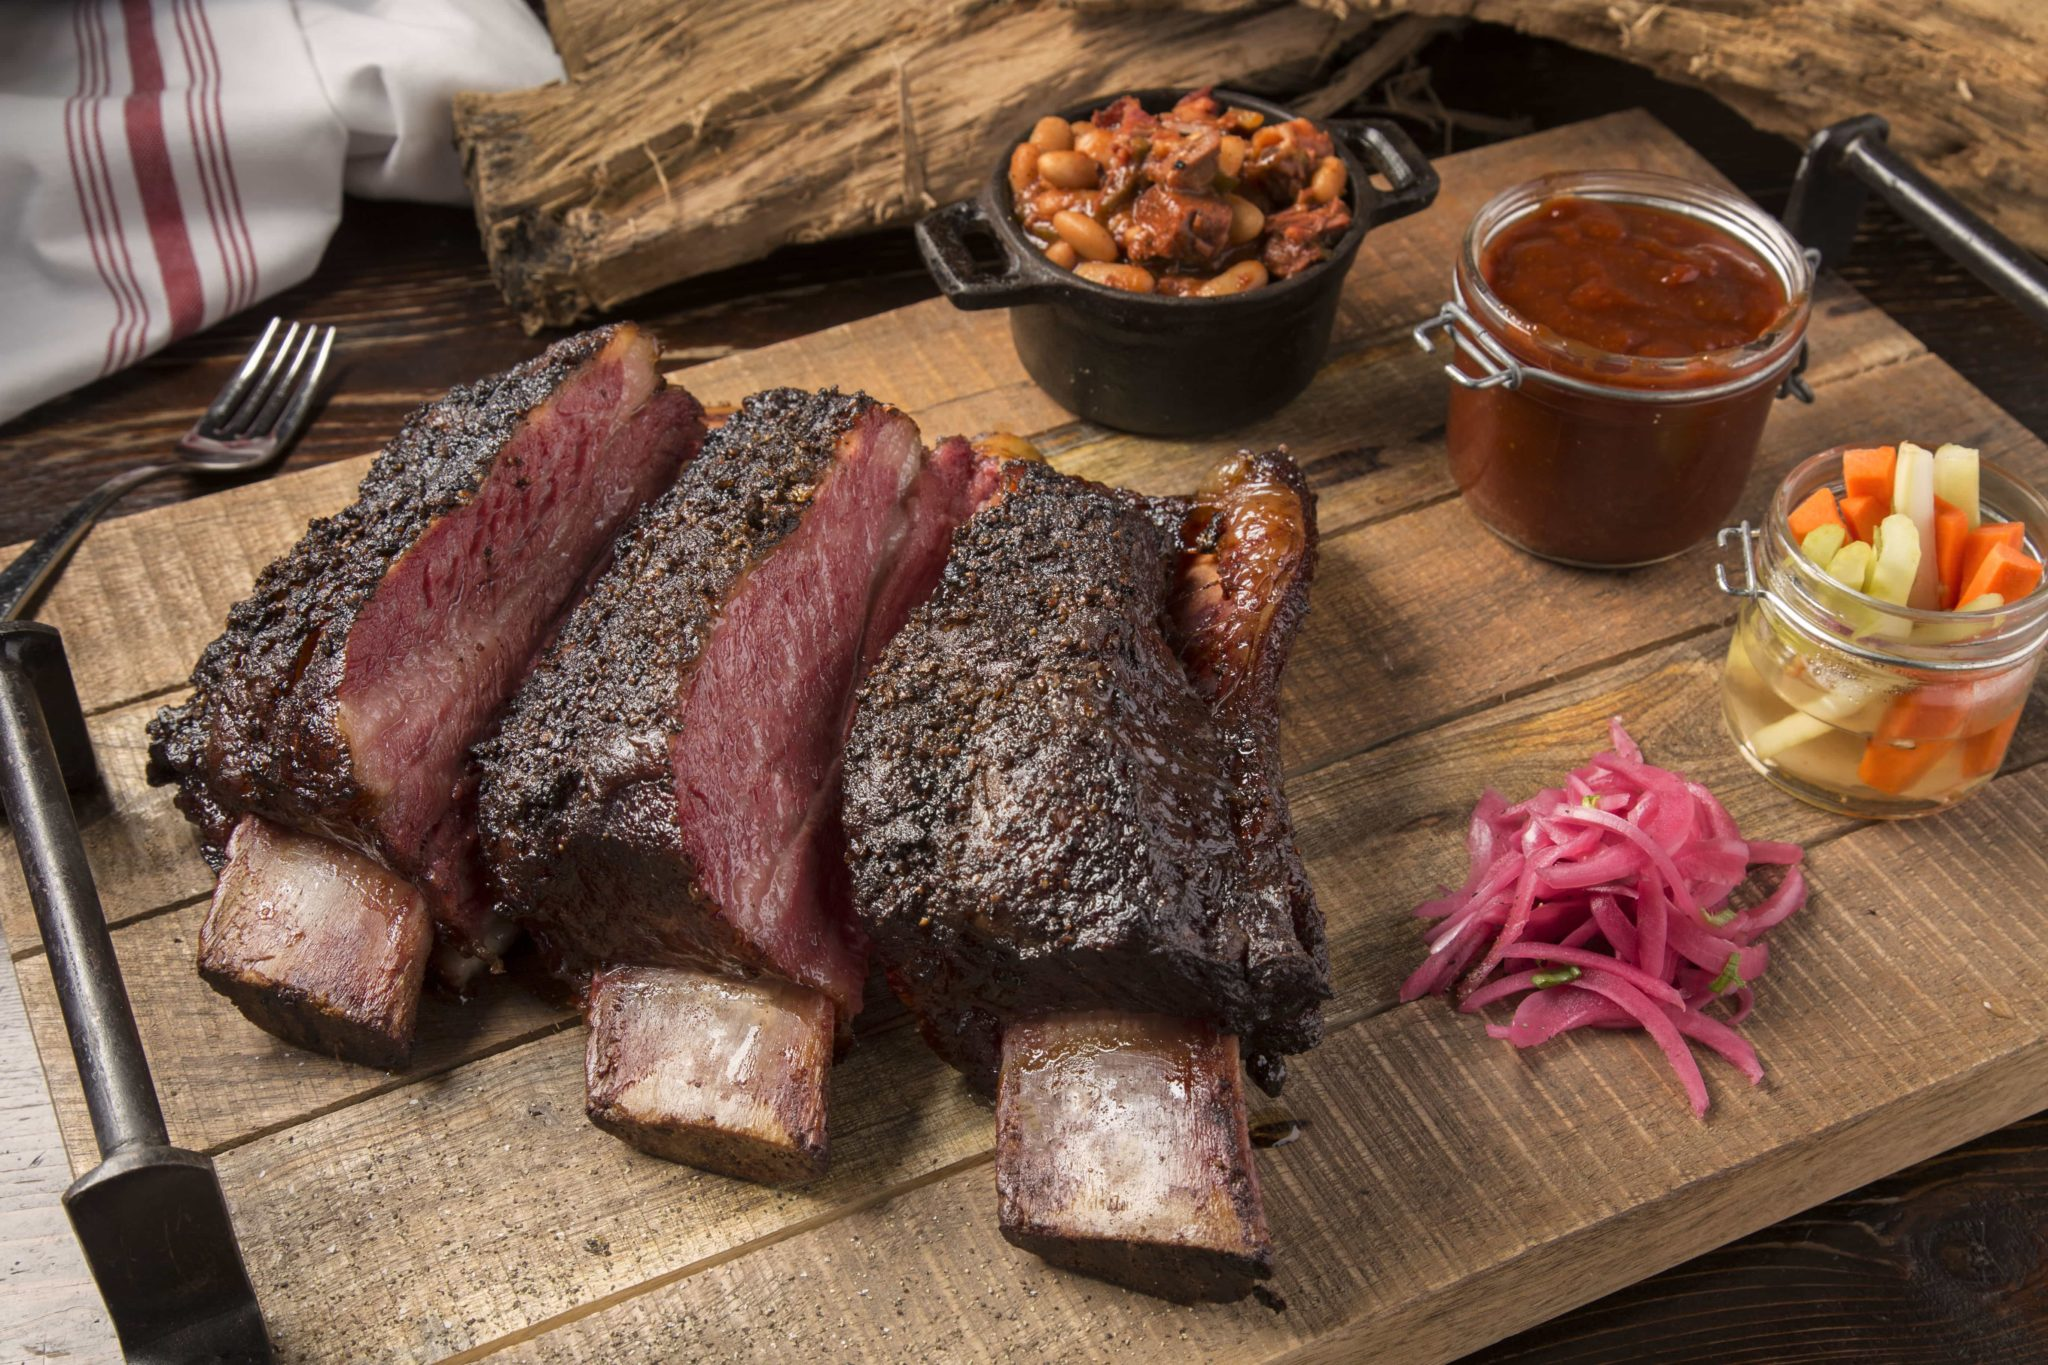 The Smoking Hot Kosher Barbecue Restaurant